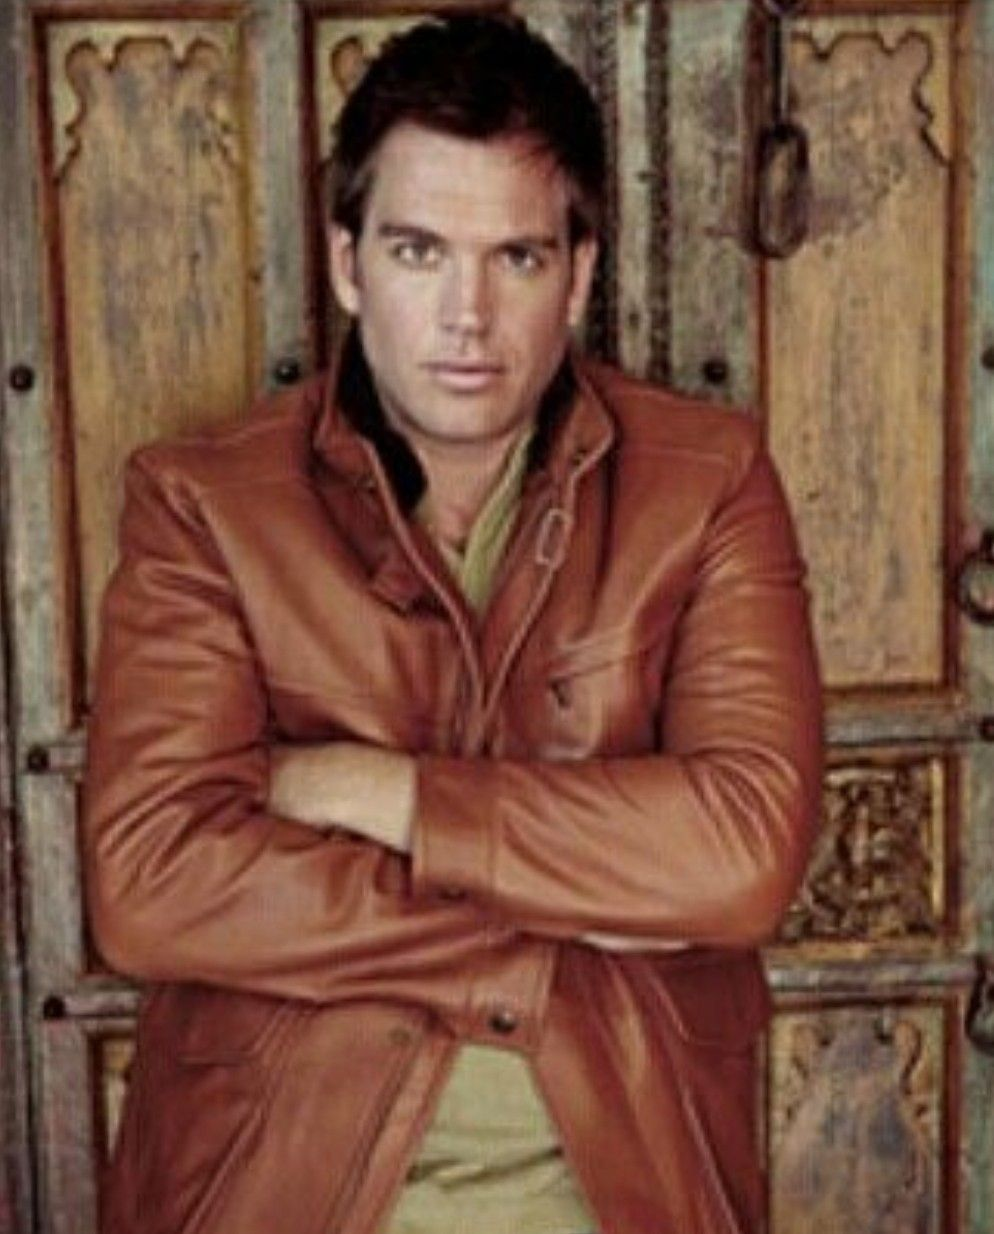 Pin By Susan Farmer On Ah Michael Weatherly I Love My Dinozzo Michael Weatherly Weatherly Tony [ 1234 x 994 Pixel ]